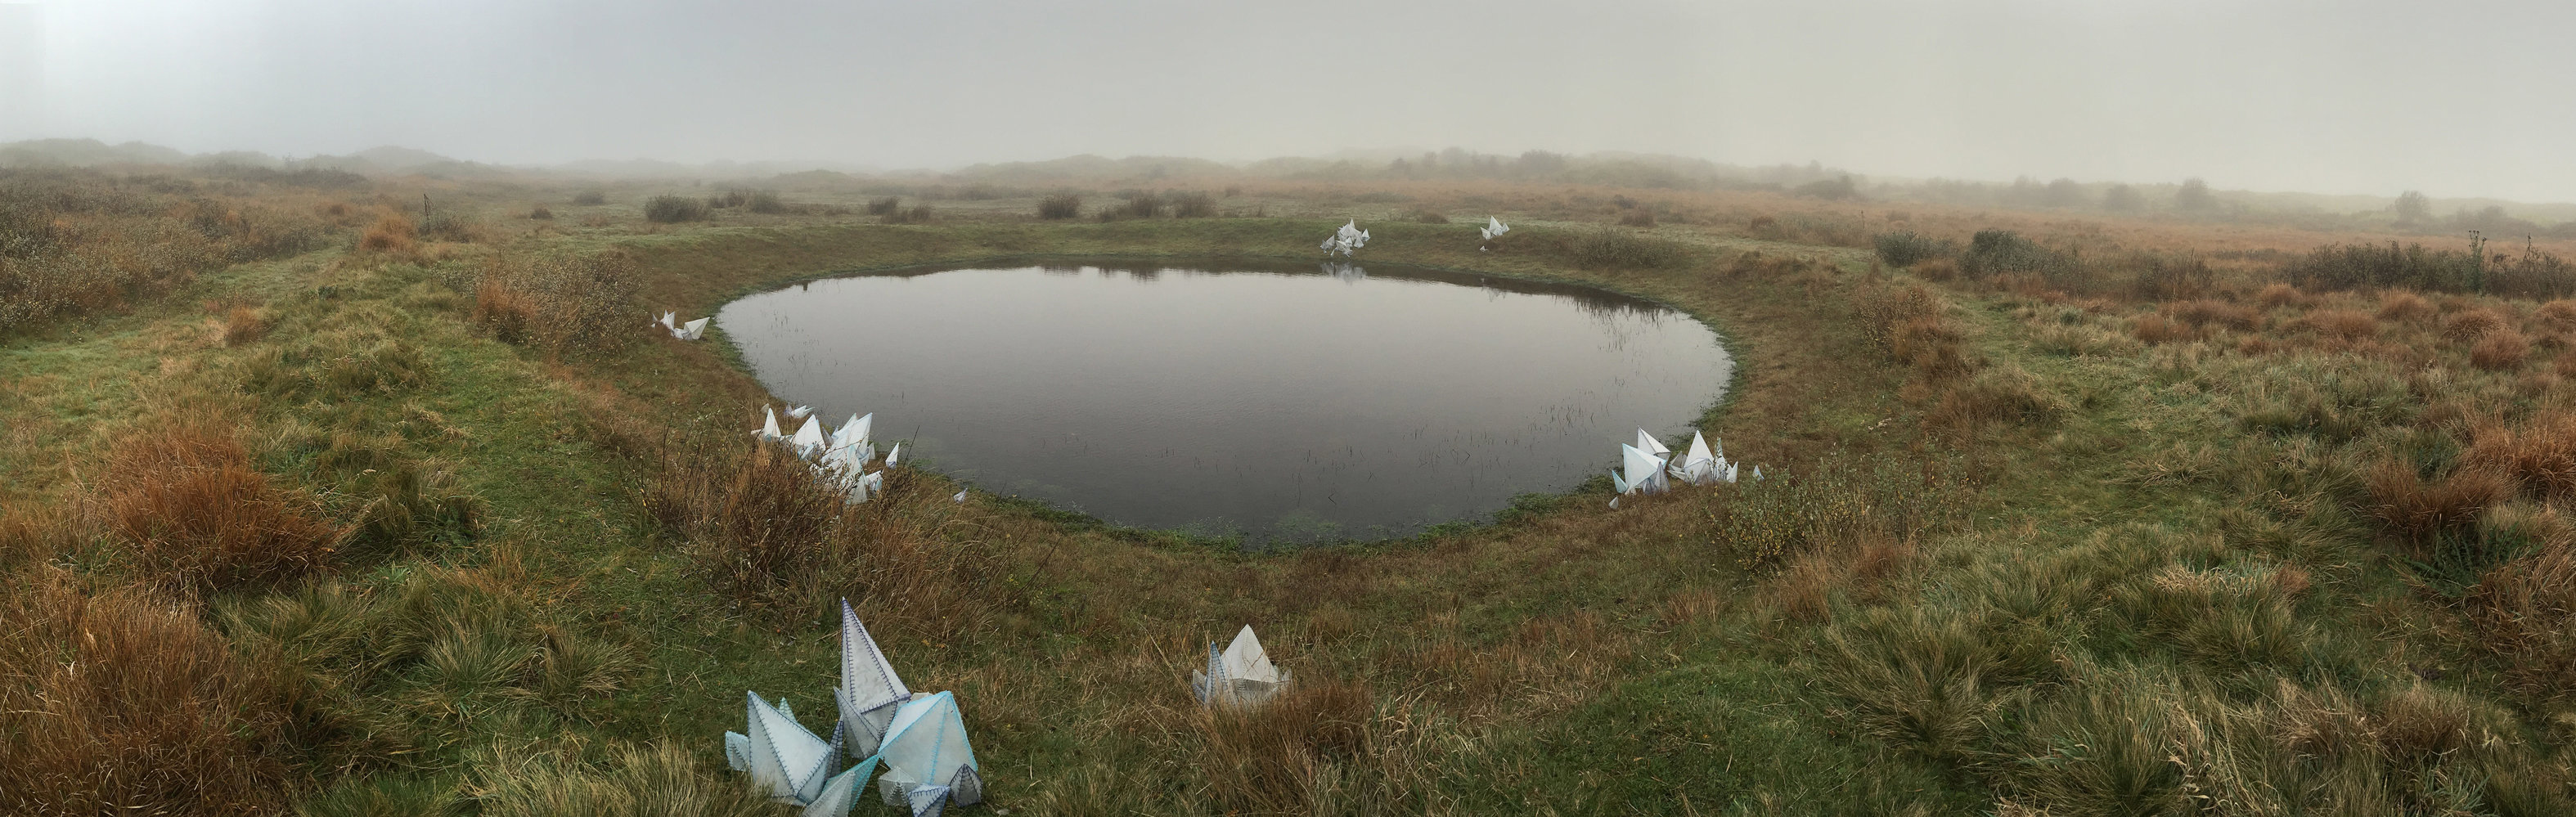 Installation made in 2015 for Artmonth Ameland in the dunes of the island Ameland, The Netherlands